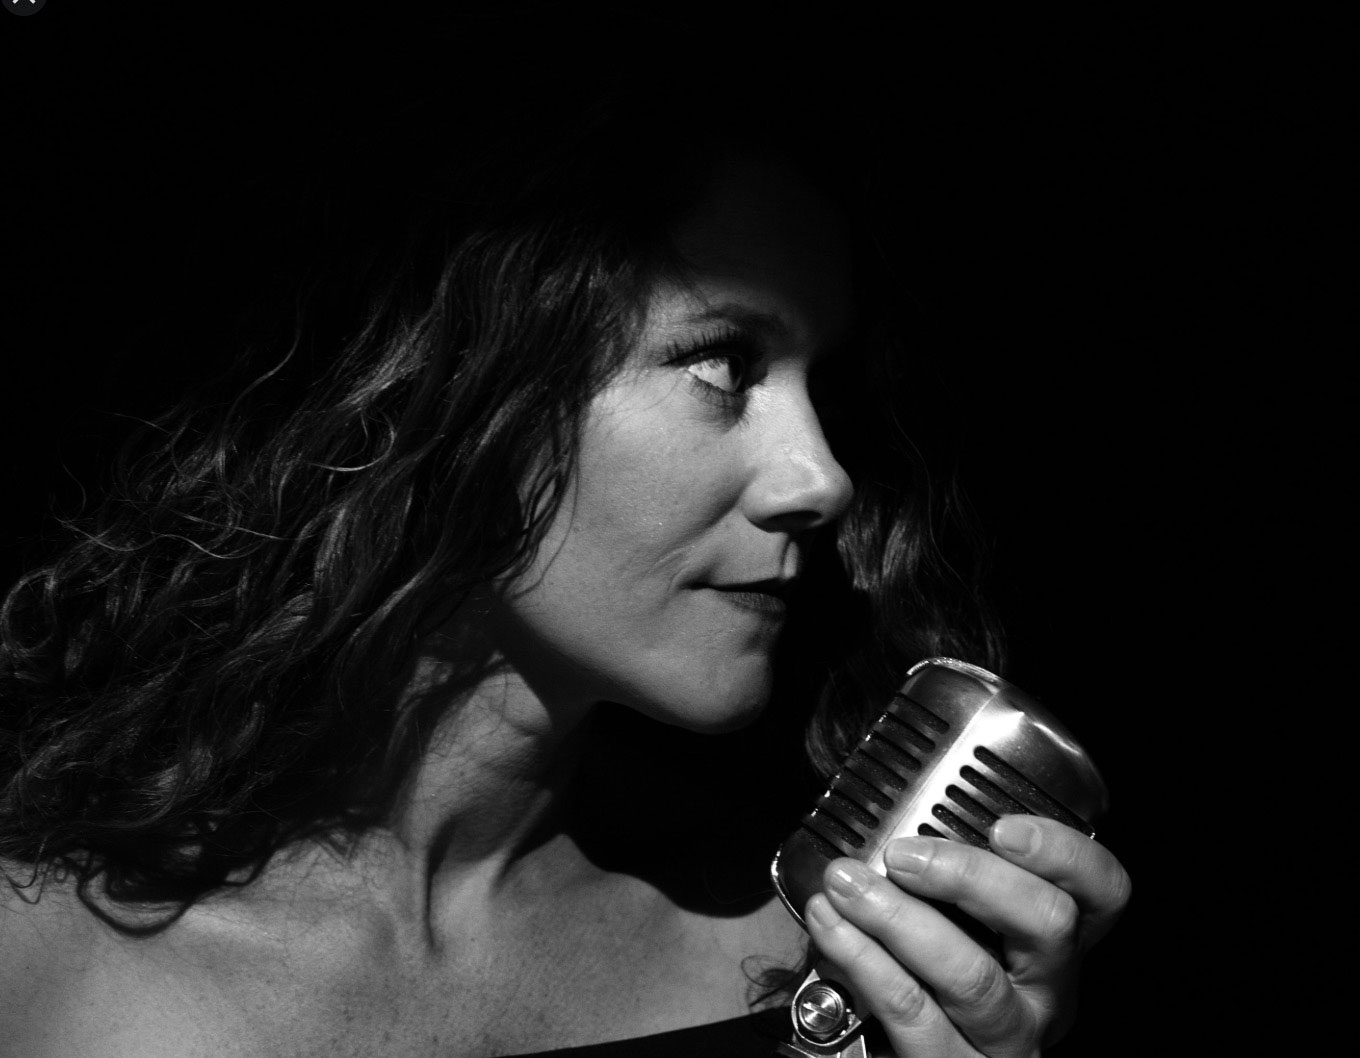 Woman with curly hair holding an old-style microphone and looking to the side